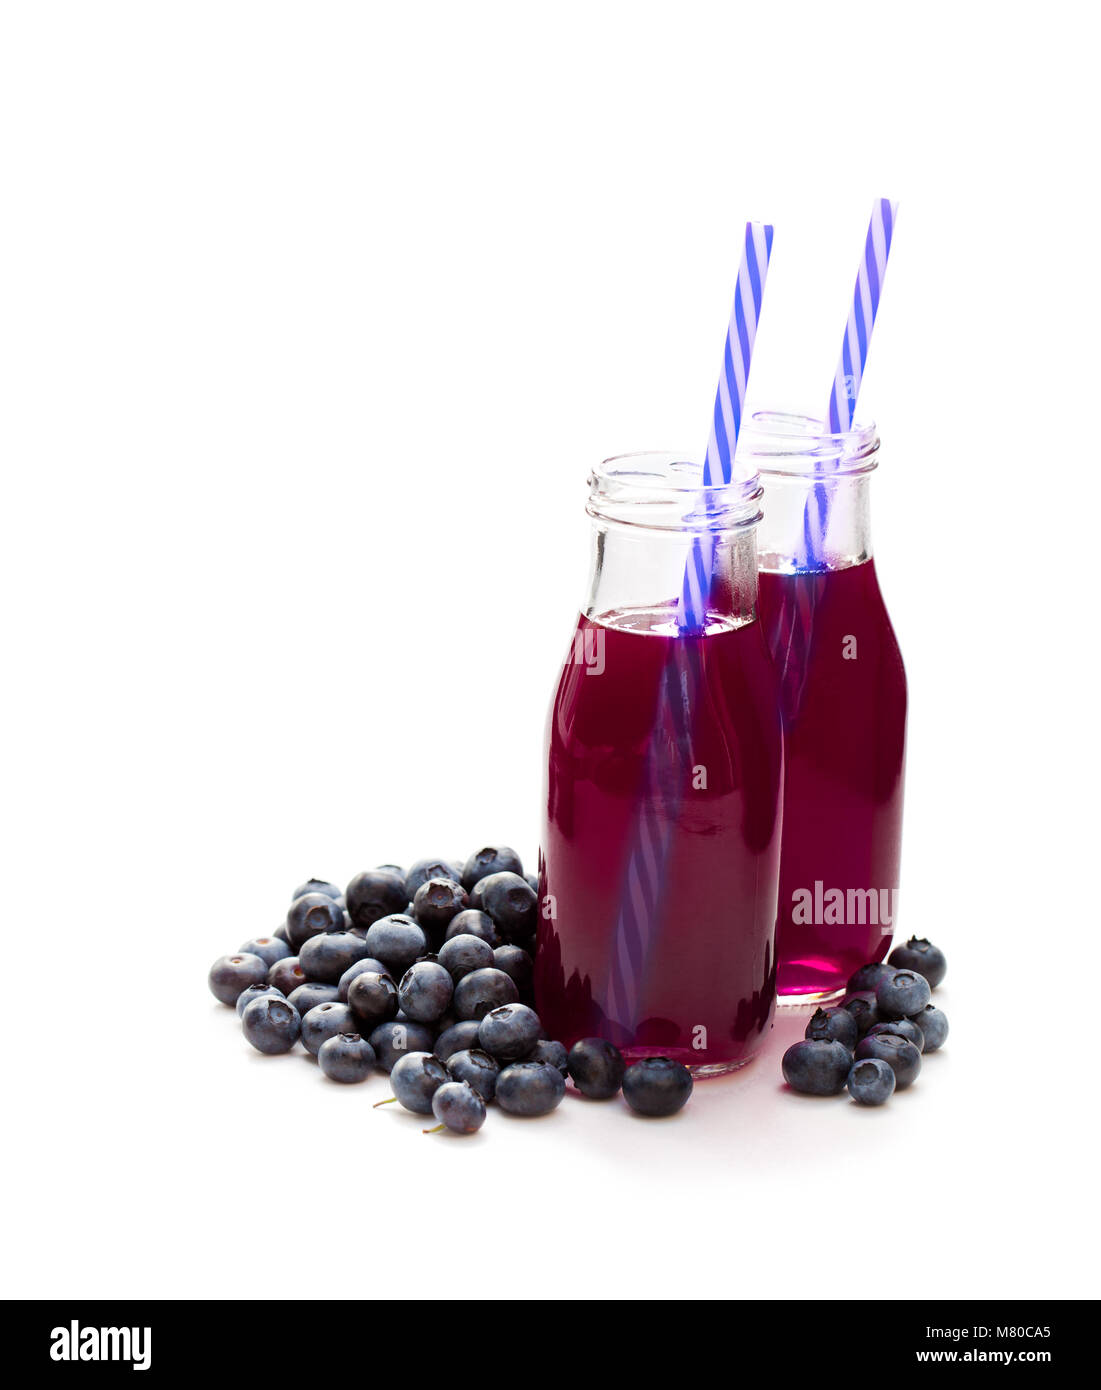 Blueberry juice in glass bottles Stock Photo: 177030621 - Alamy